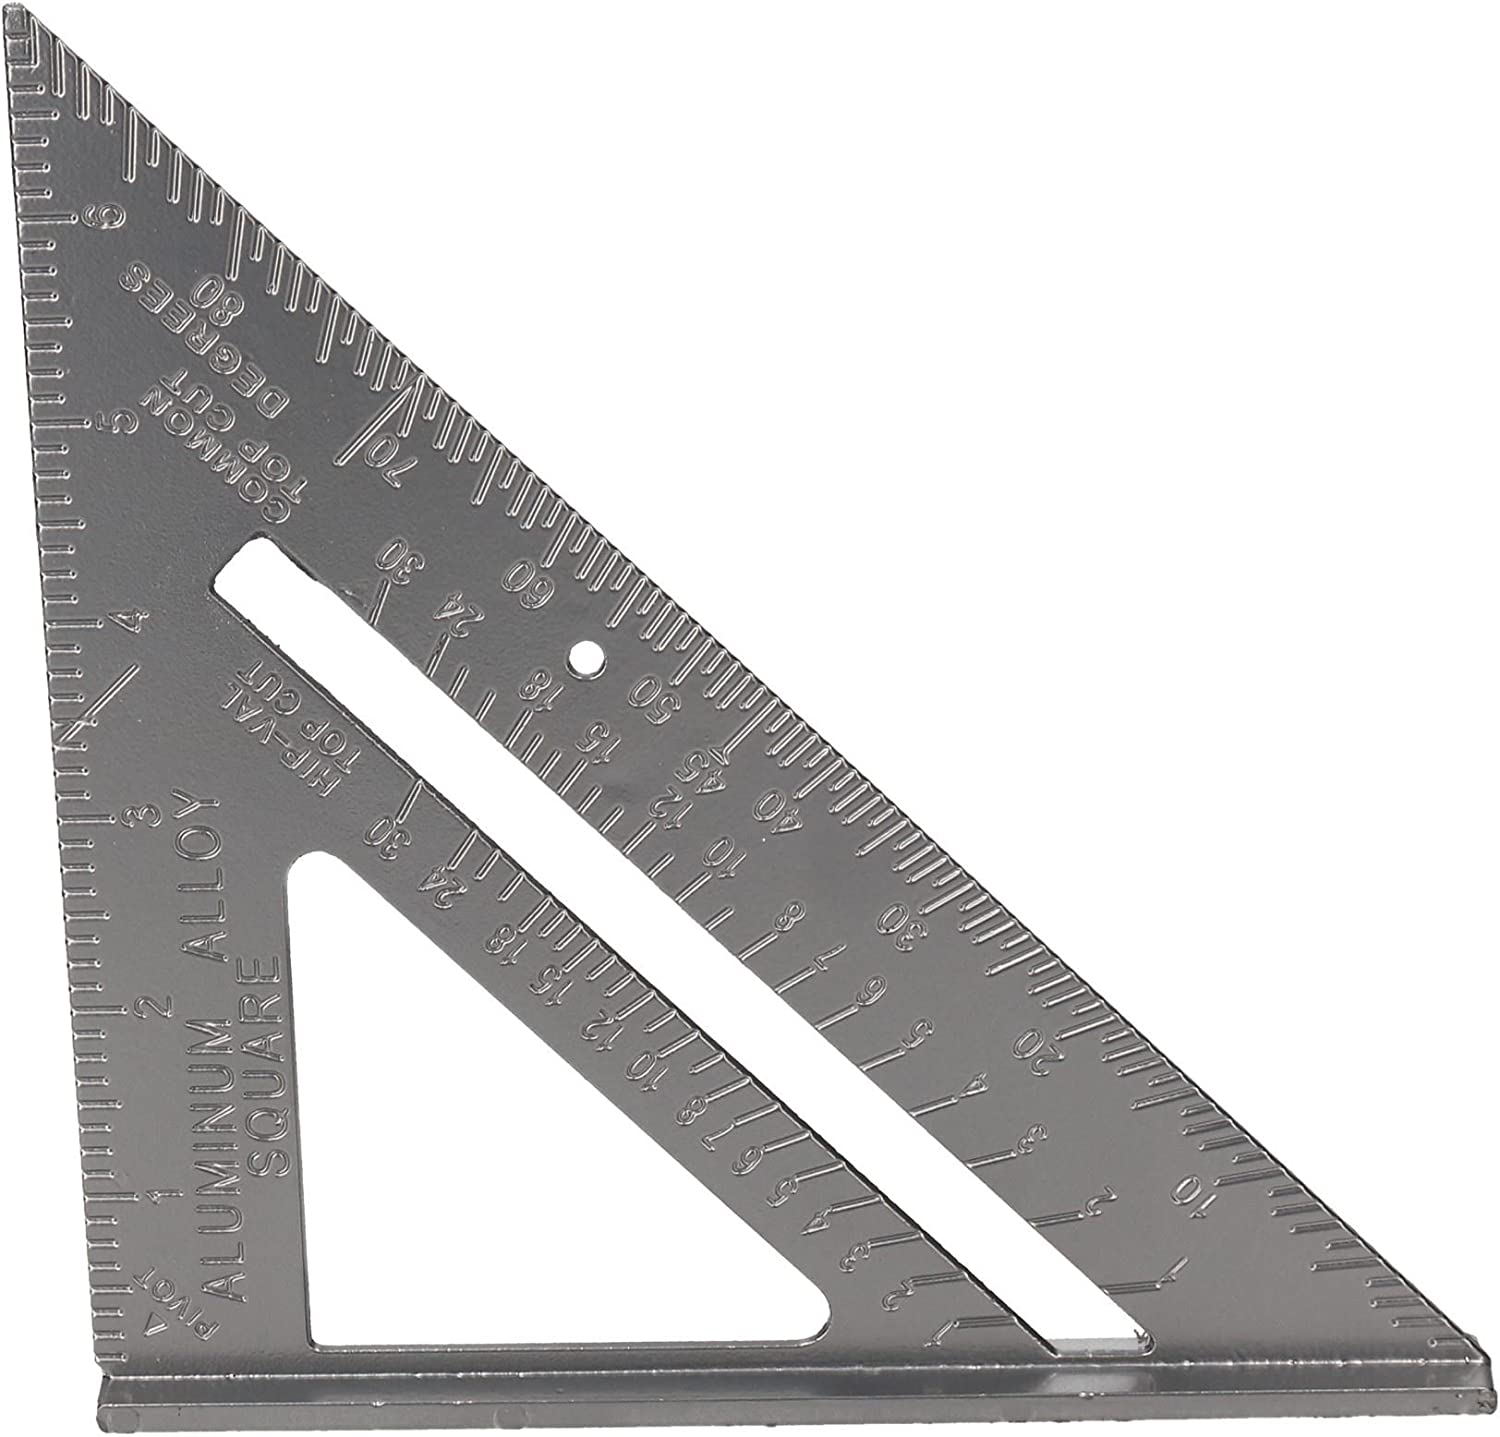 6 Aluminium Speed Square Measuring Rafter Roofing Triangle Joinery Guide